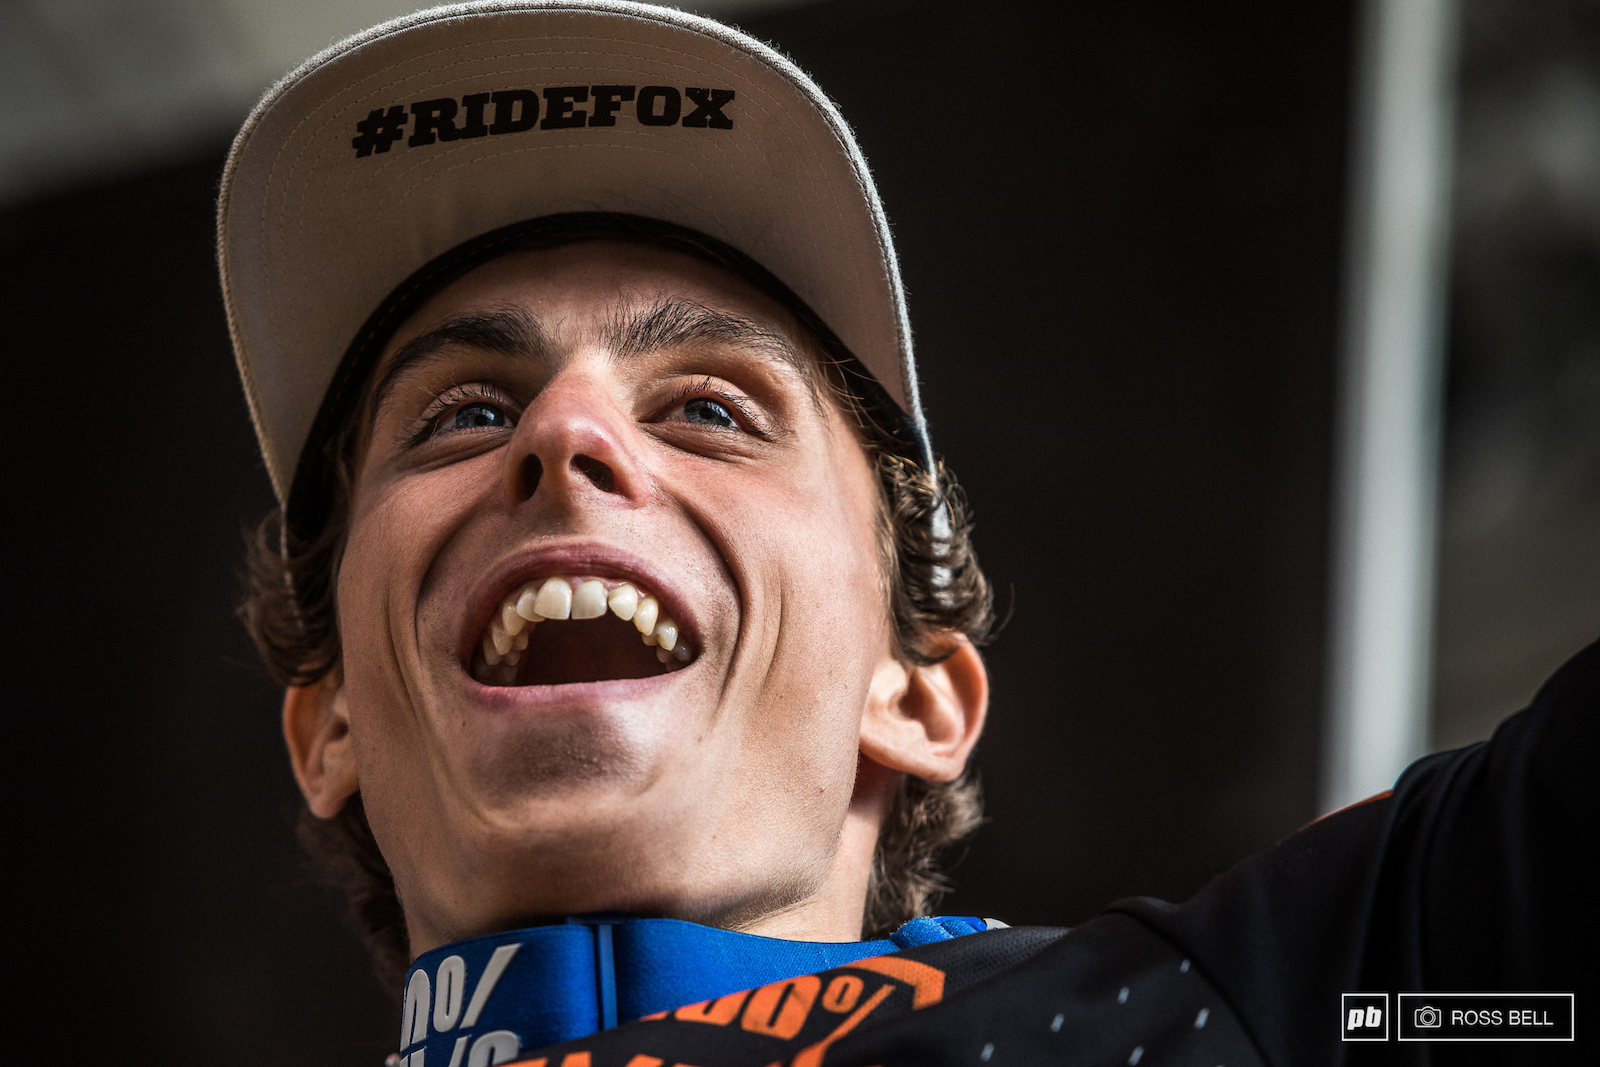 What a ride from Amaury Pierron to storm to second place.